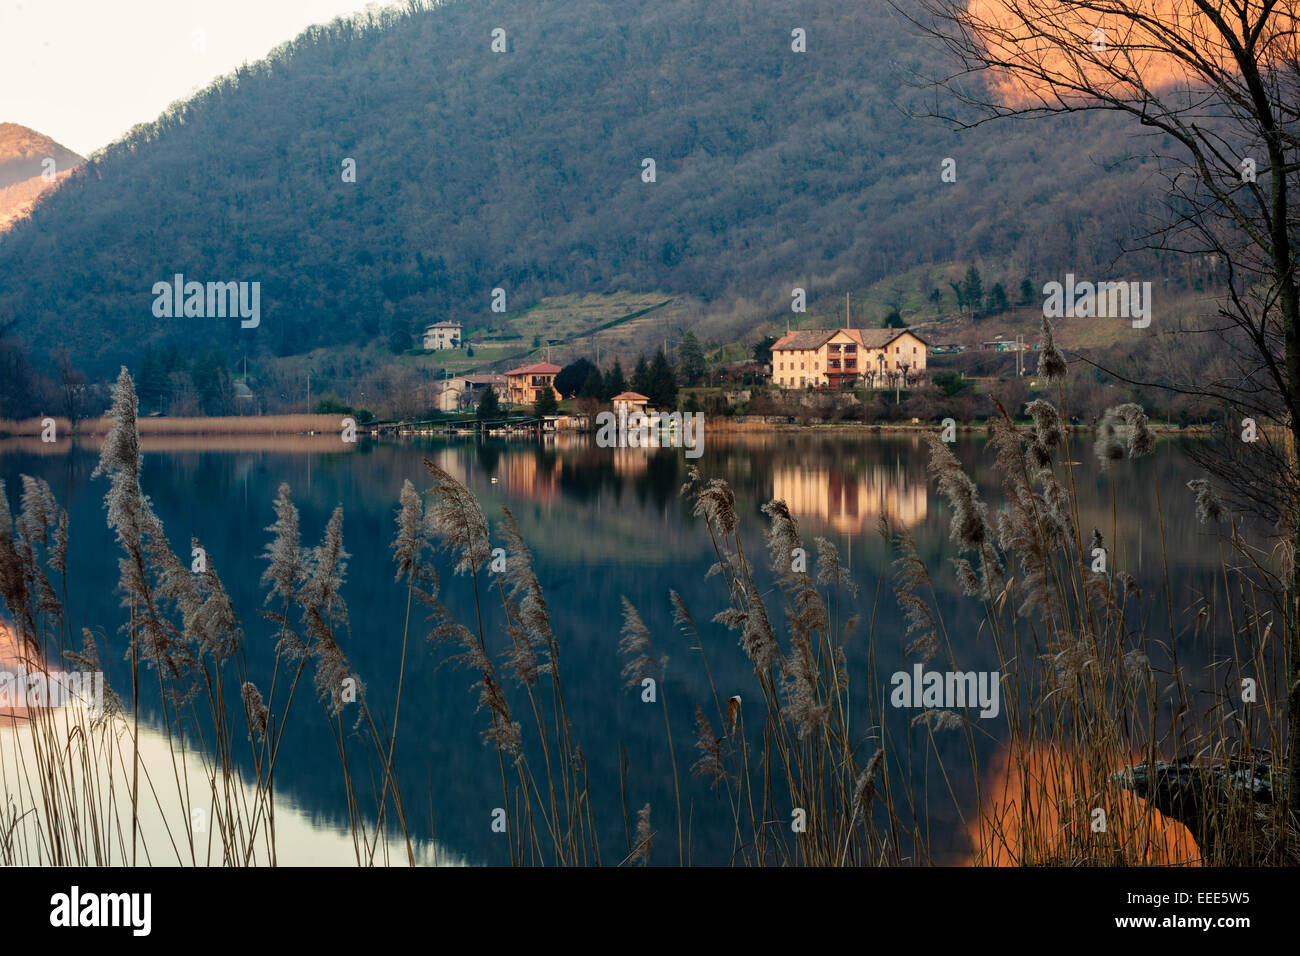 Waterscape reflection taken during sunset. The whole image seems a spearhead. Lombardia. Italy - Stock Image